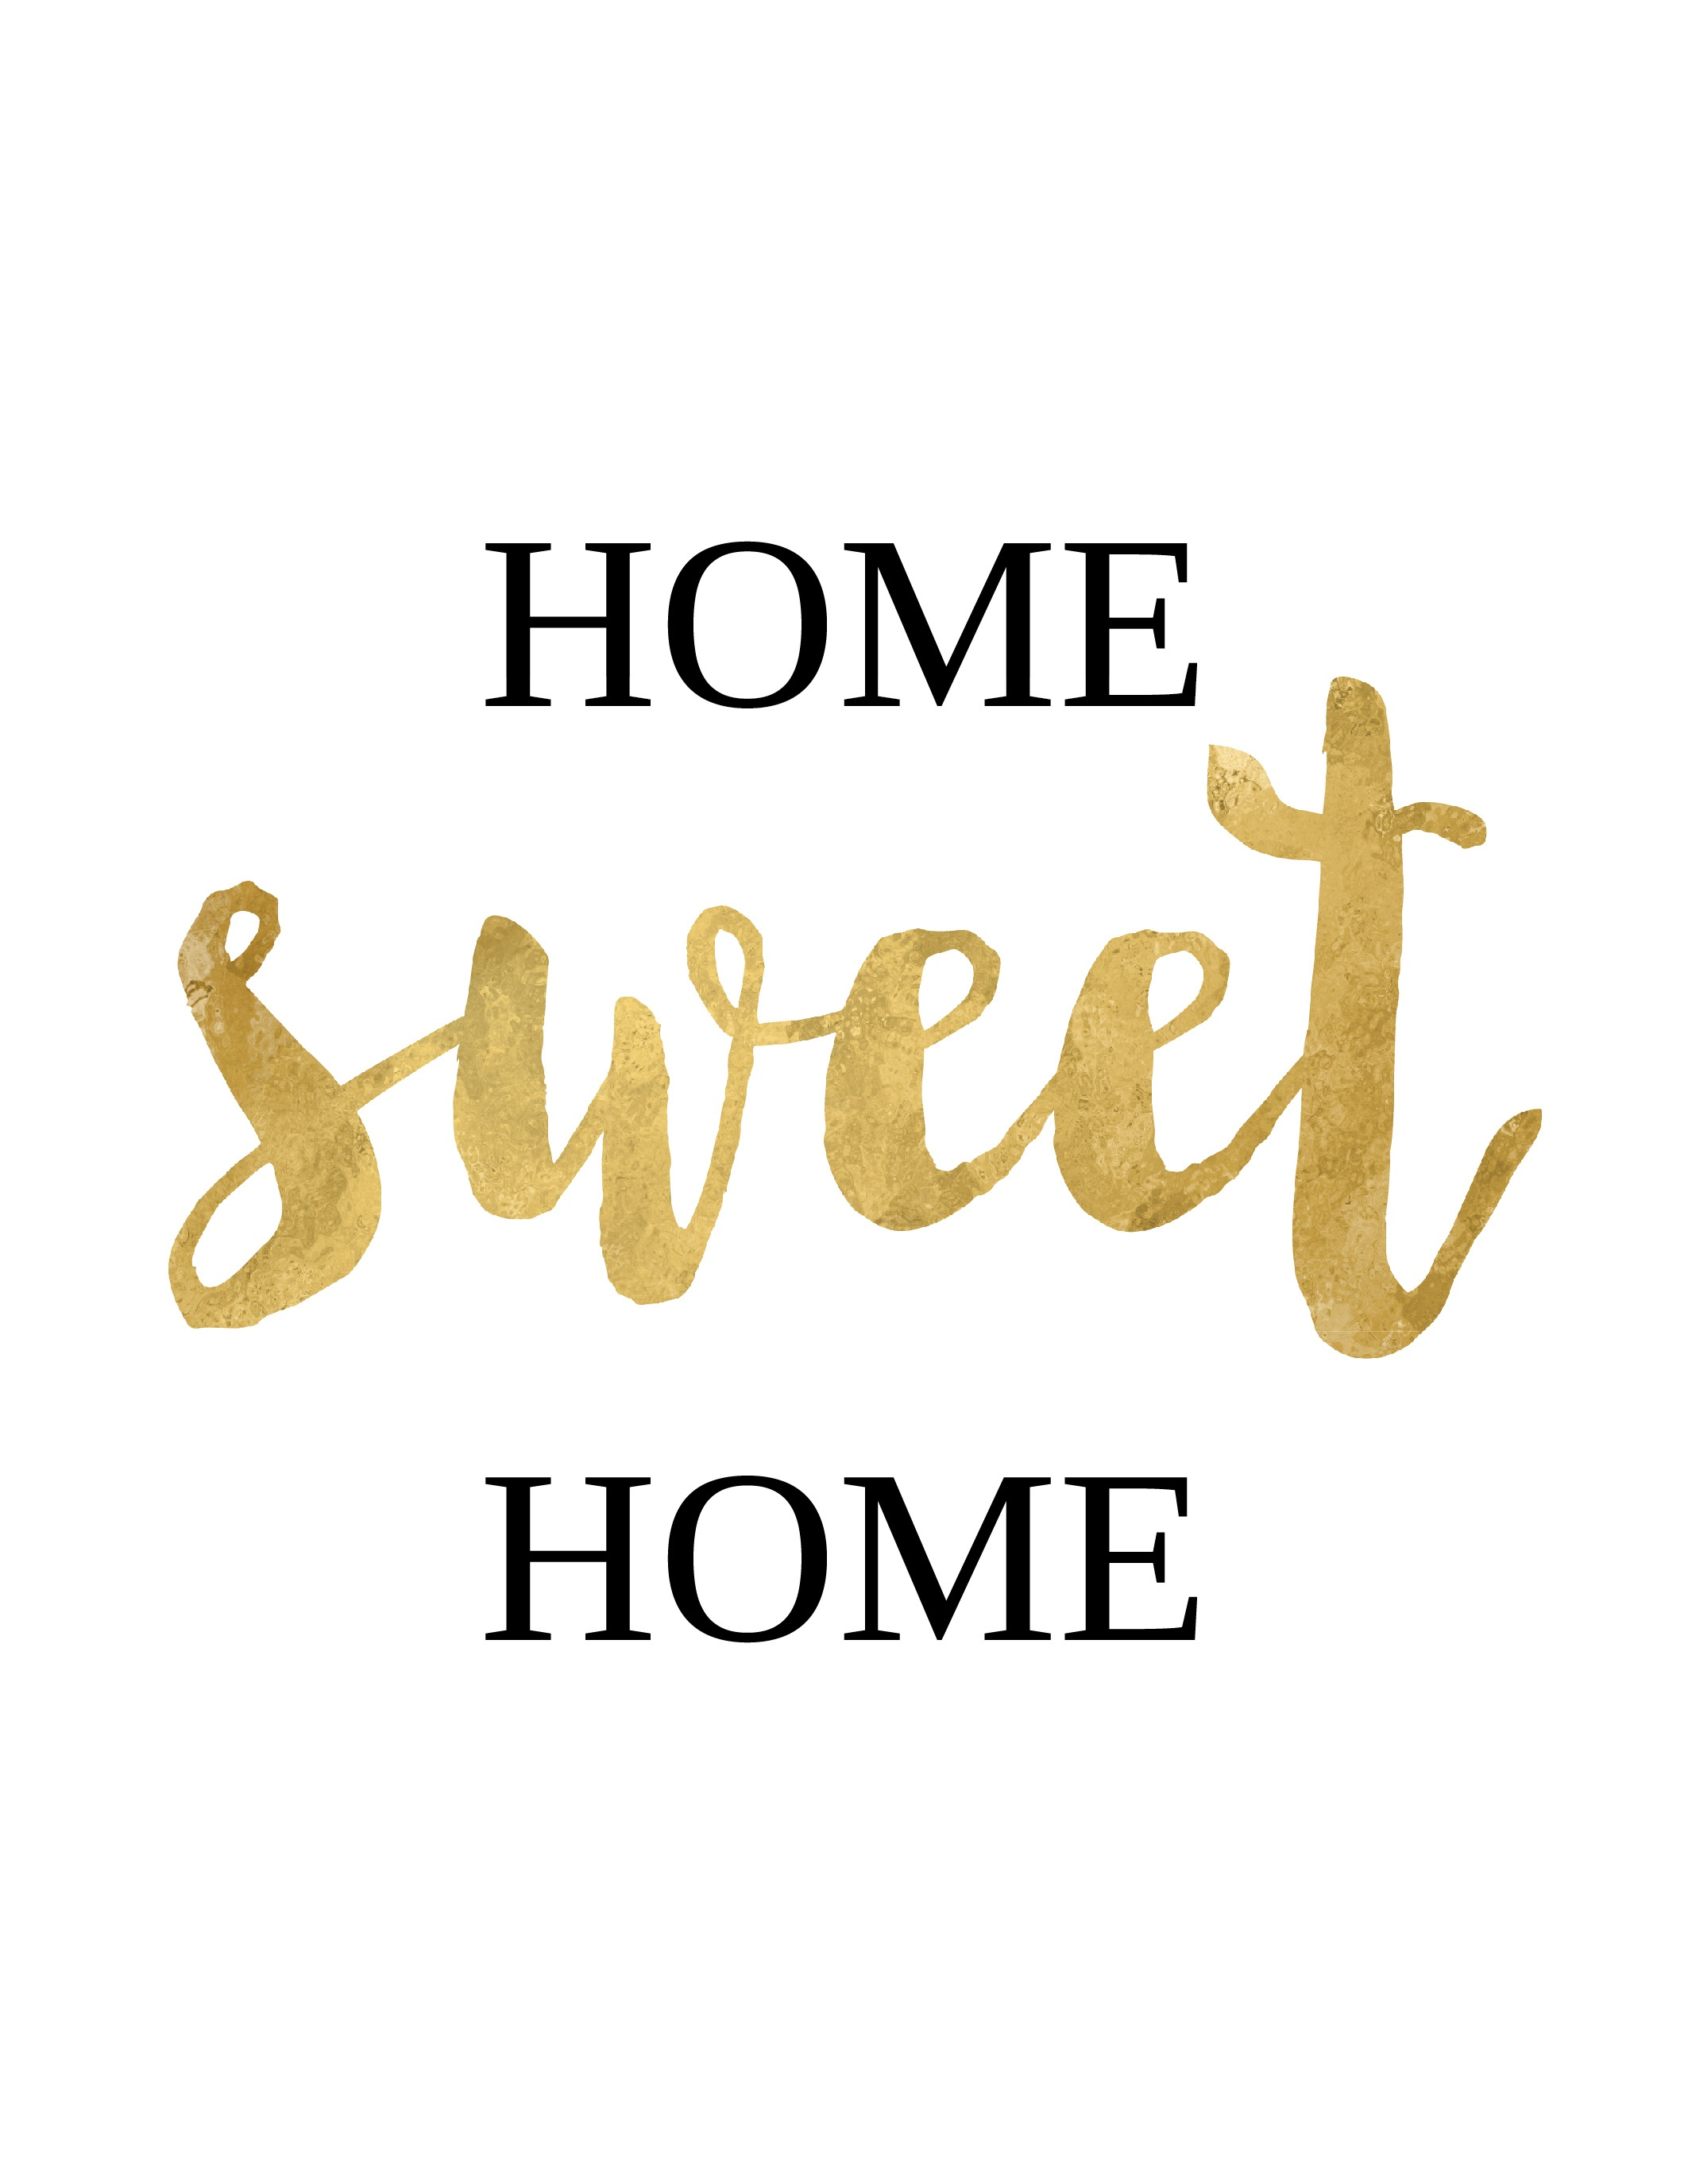 Top 15 Inspirational Quotes About Home   Personalized Moving Cards - Home Sweet Home Free Printable